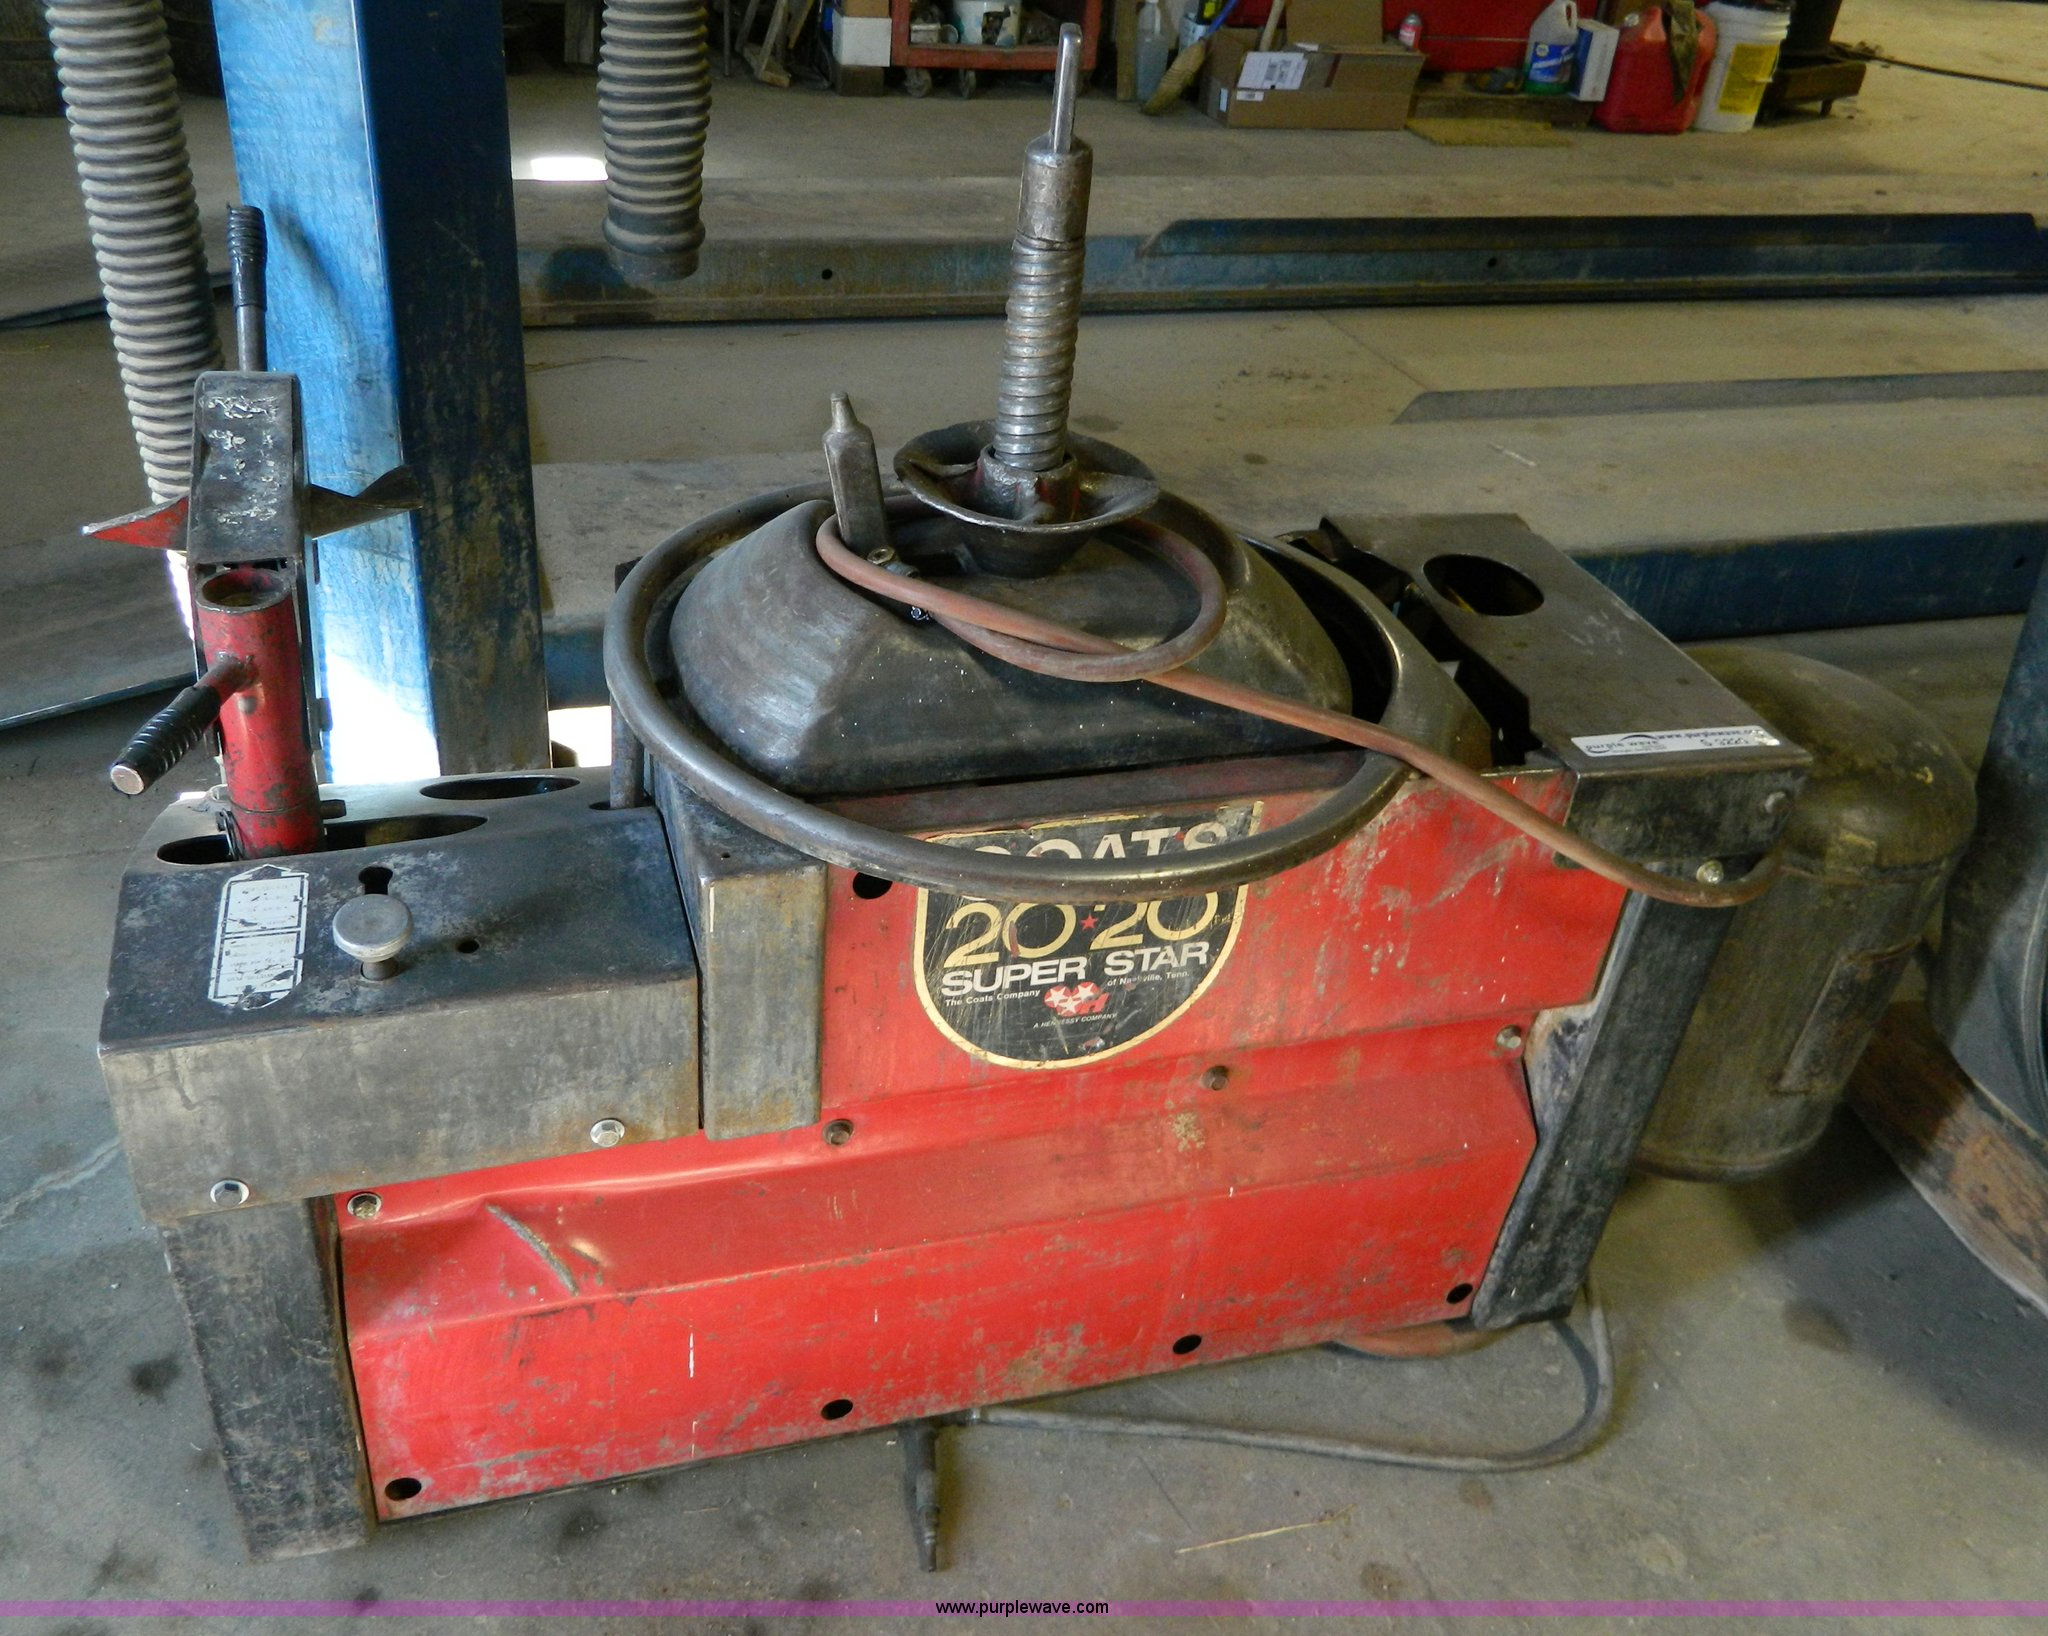 Coats 20 20a Tire Changer Item S9229 Sold March 5